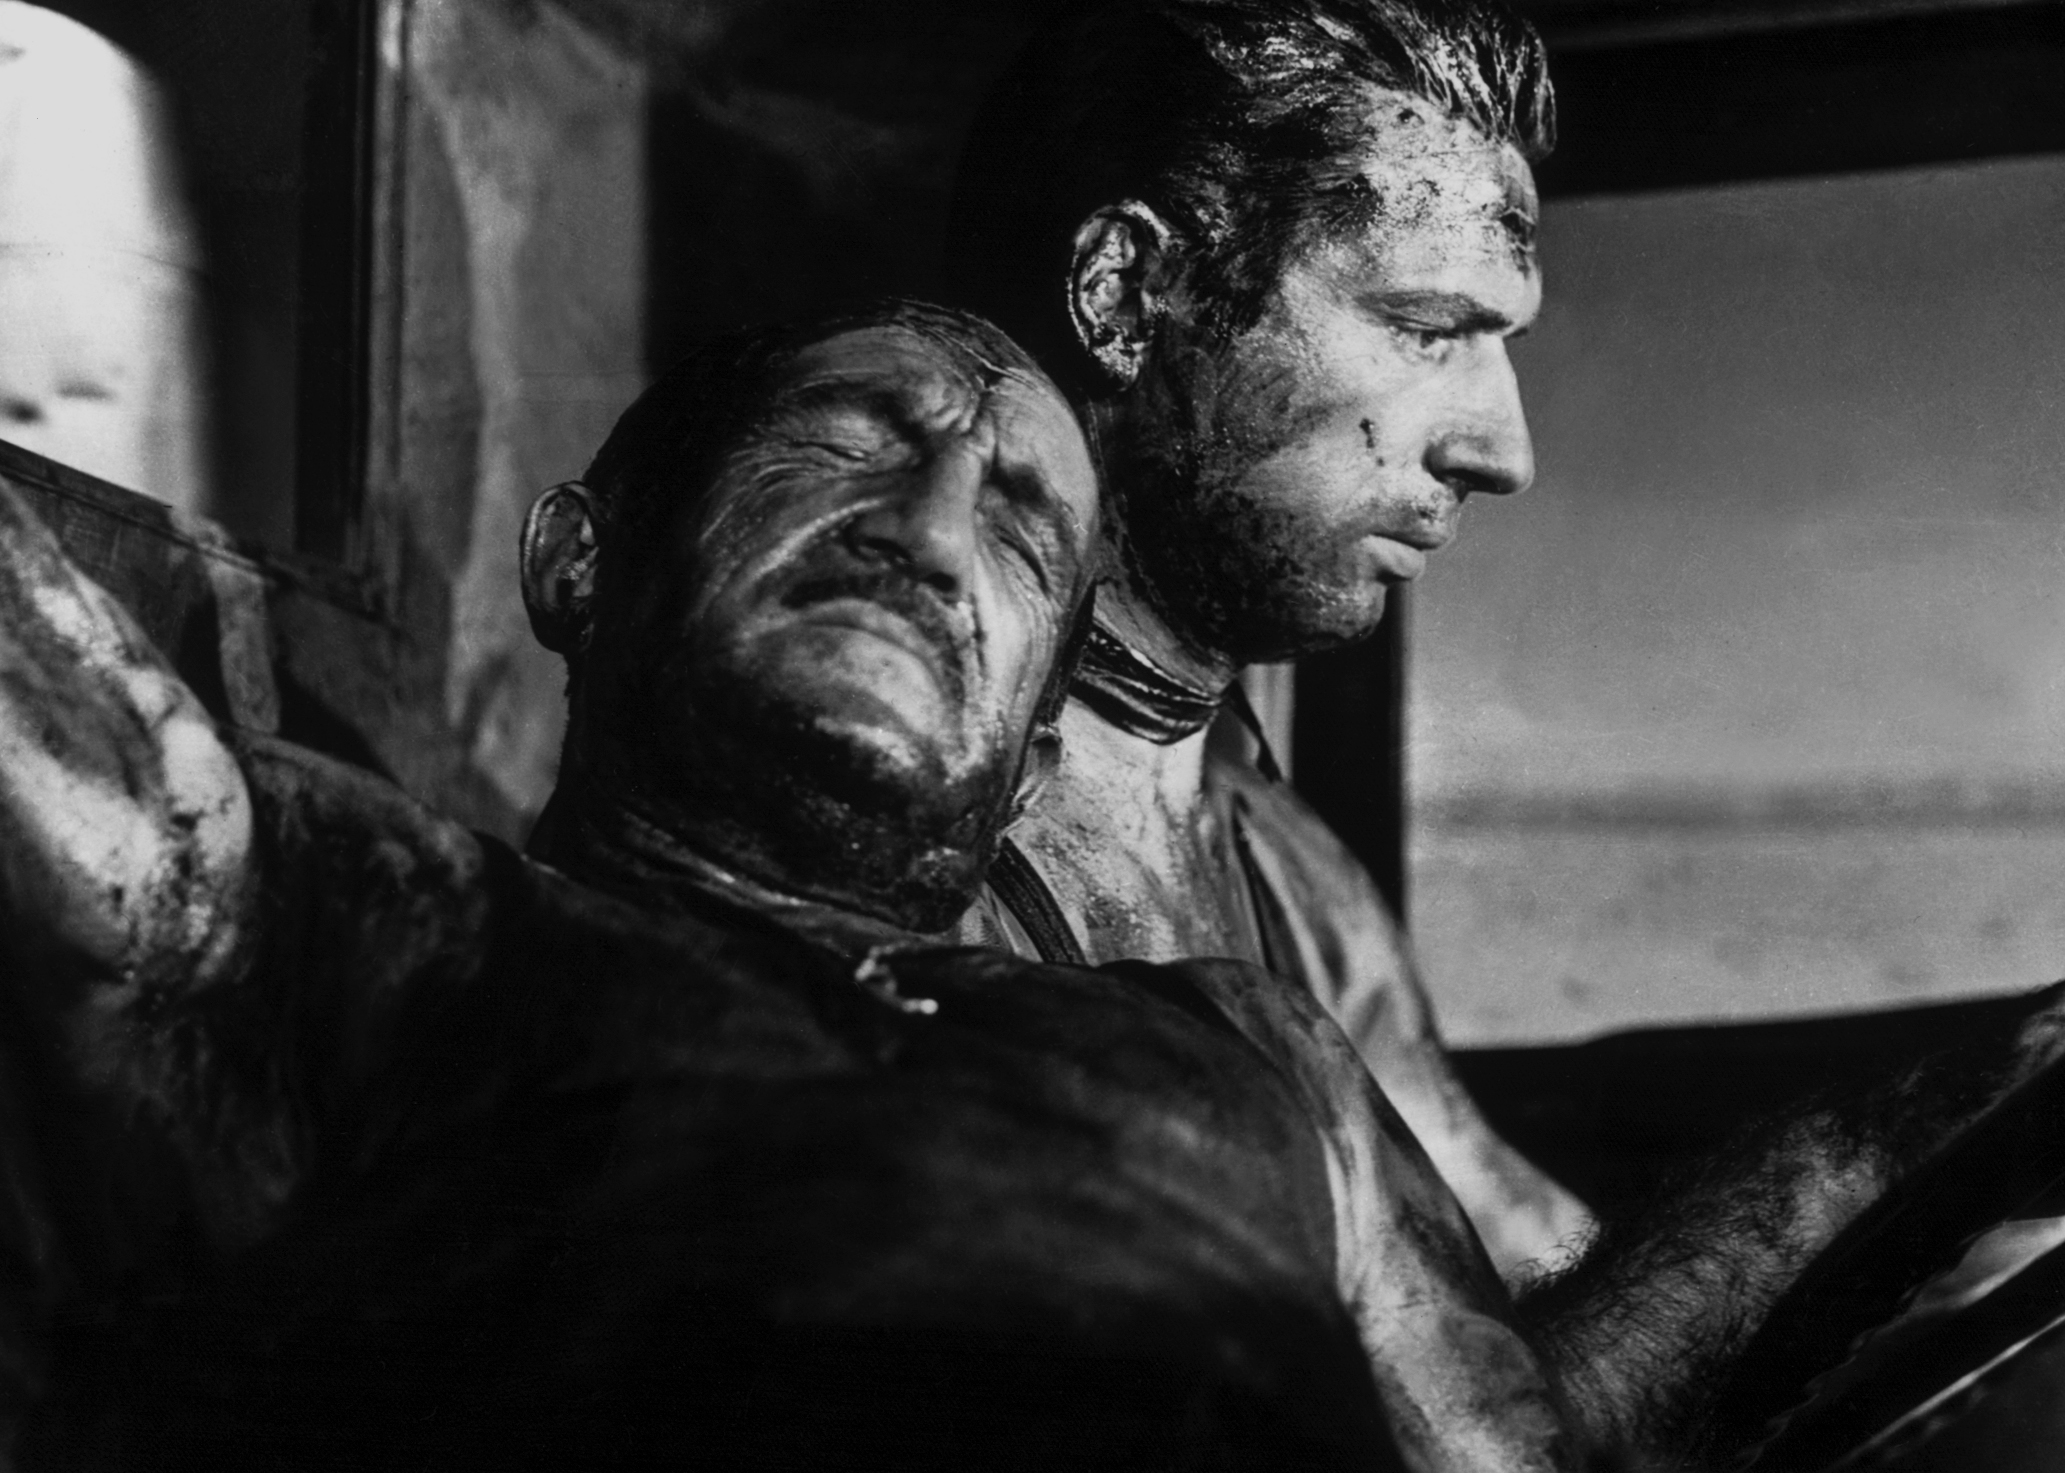 246. The Wages of Fear (1953)